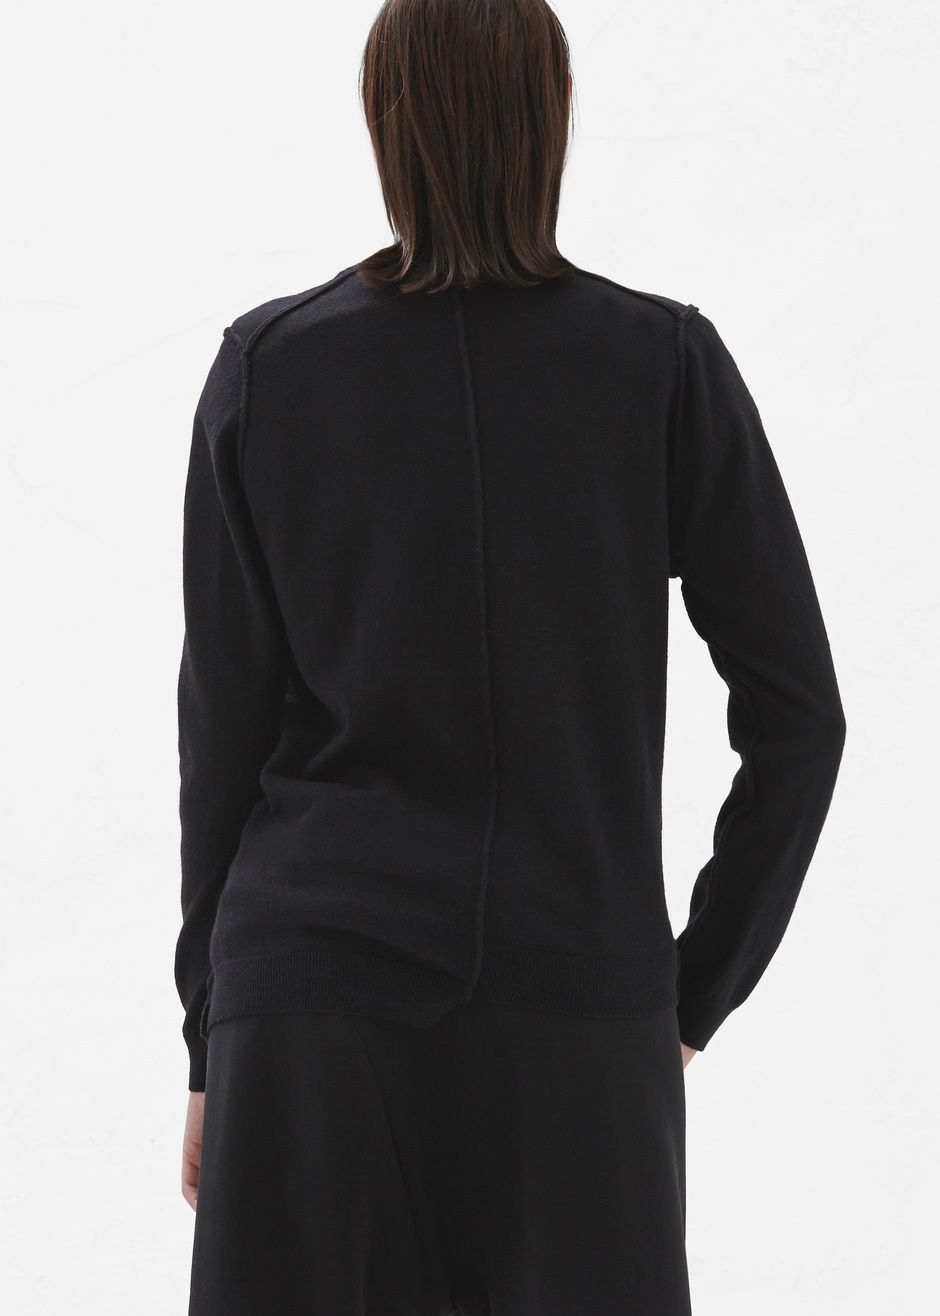 Asymmetrical pullover sweater in a black cotton and wool blend ...